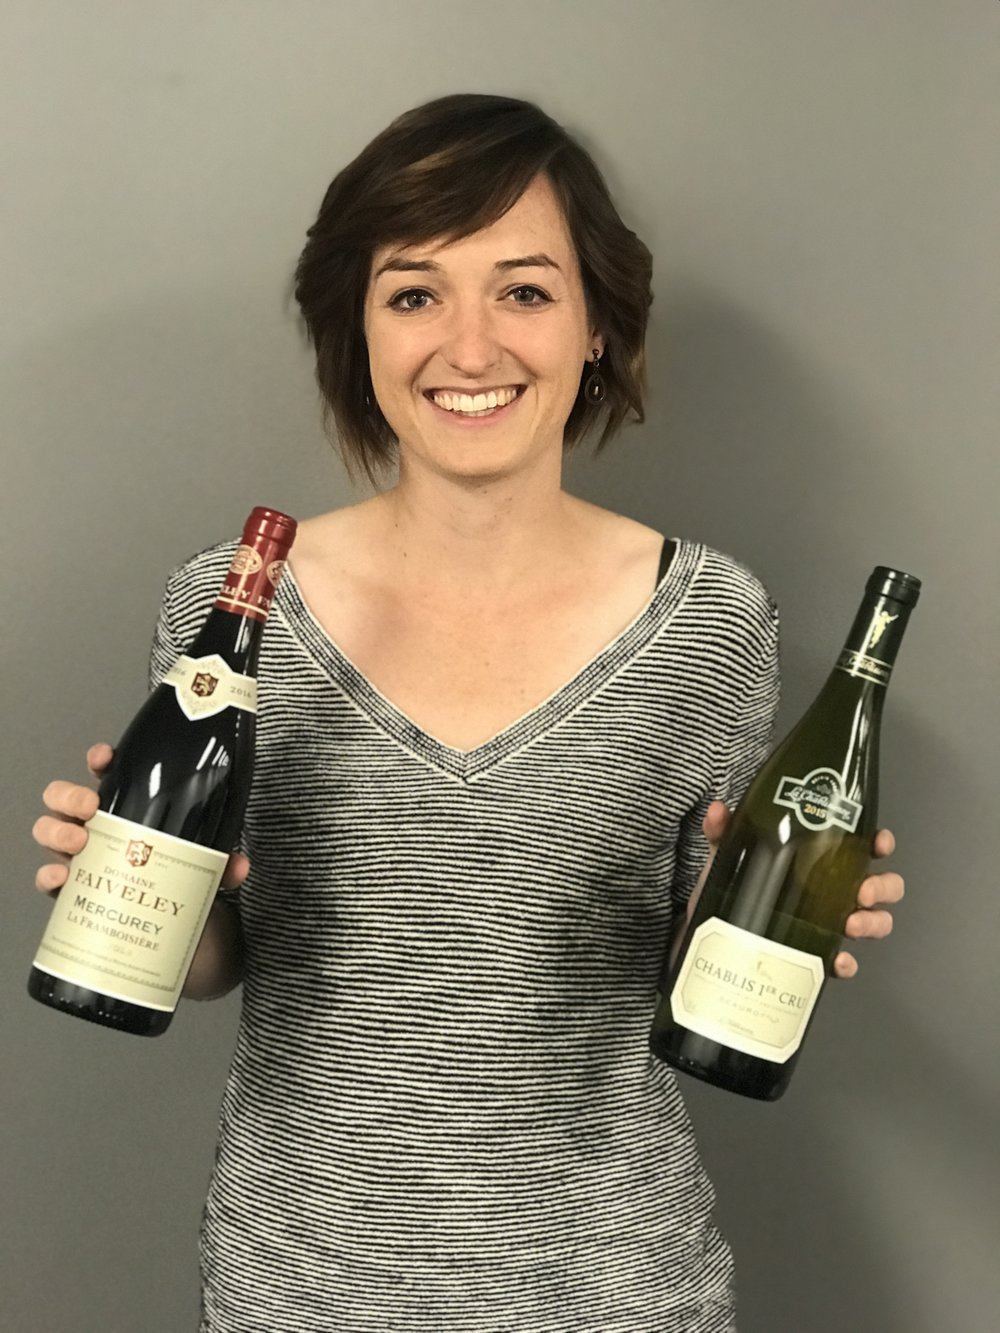 Our Wine Club Gal, Heather Gowen, with November Club Français wines